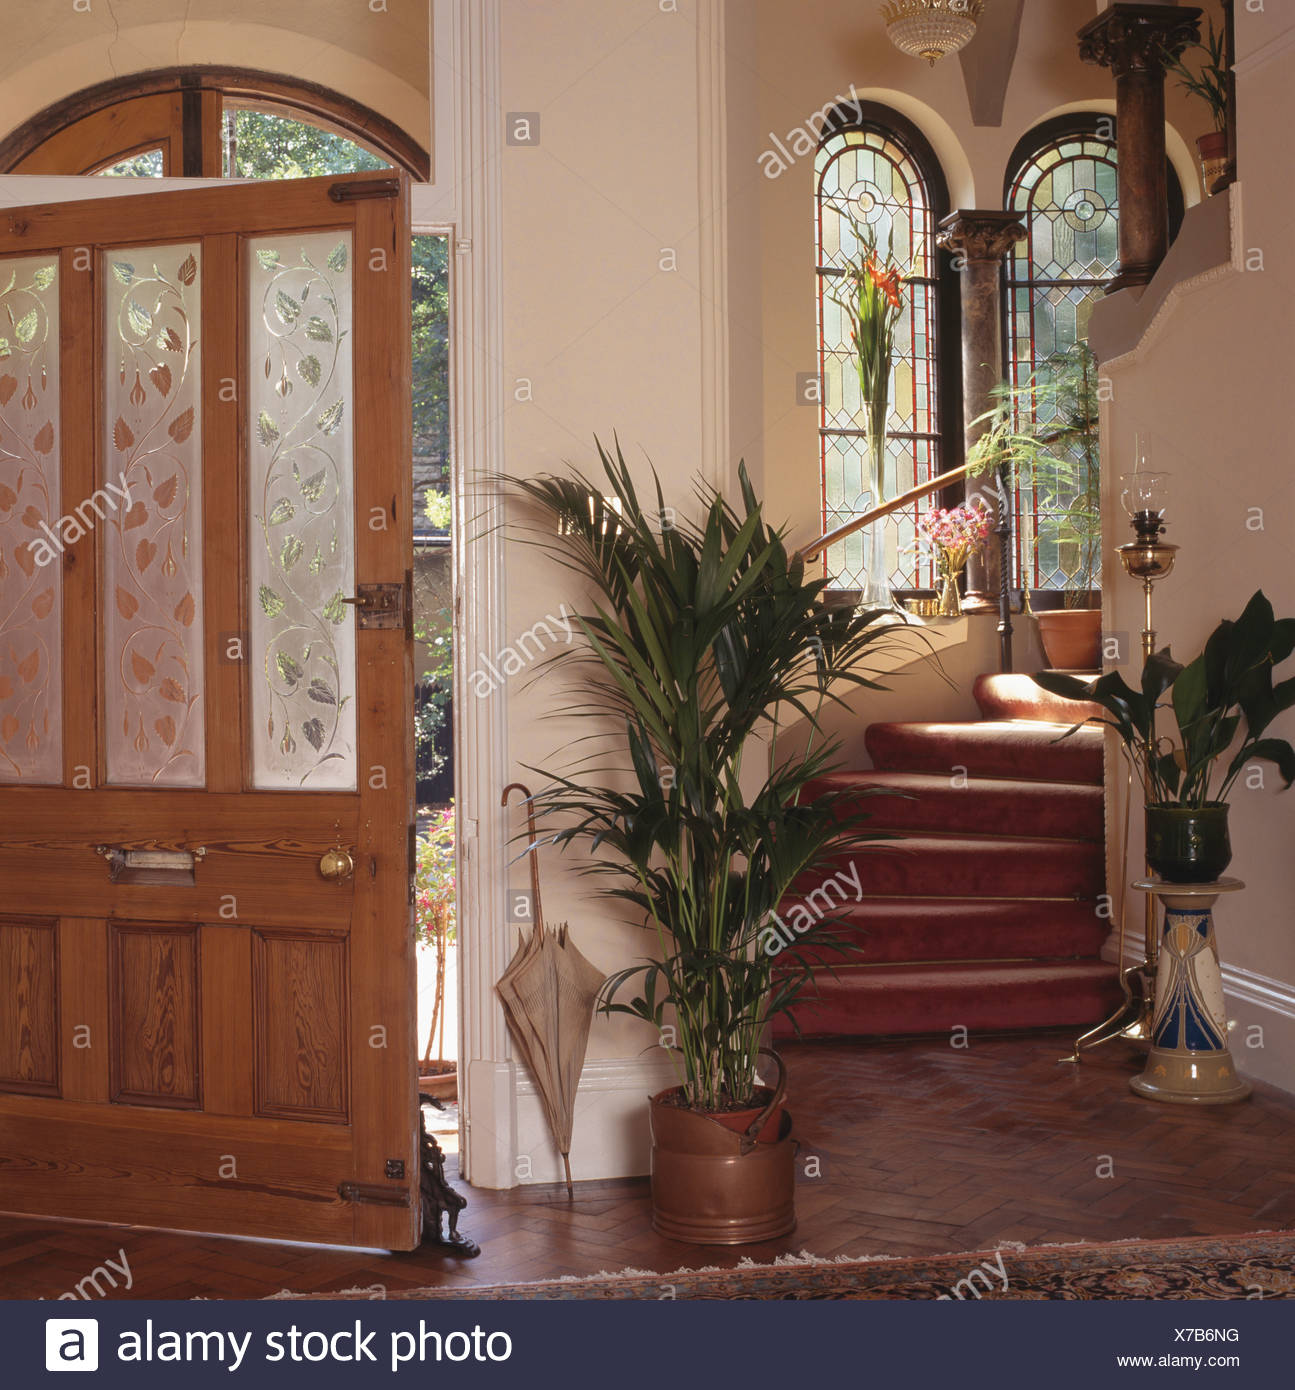 Green Houseplants On Either Side Of Staircase In Cream Hall With Open Front Door Engraved Glass Panels